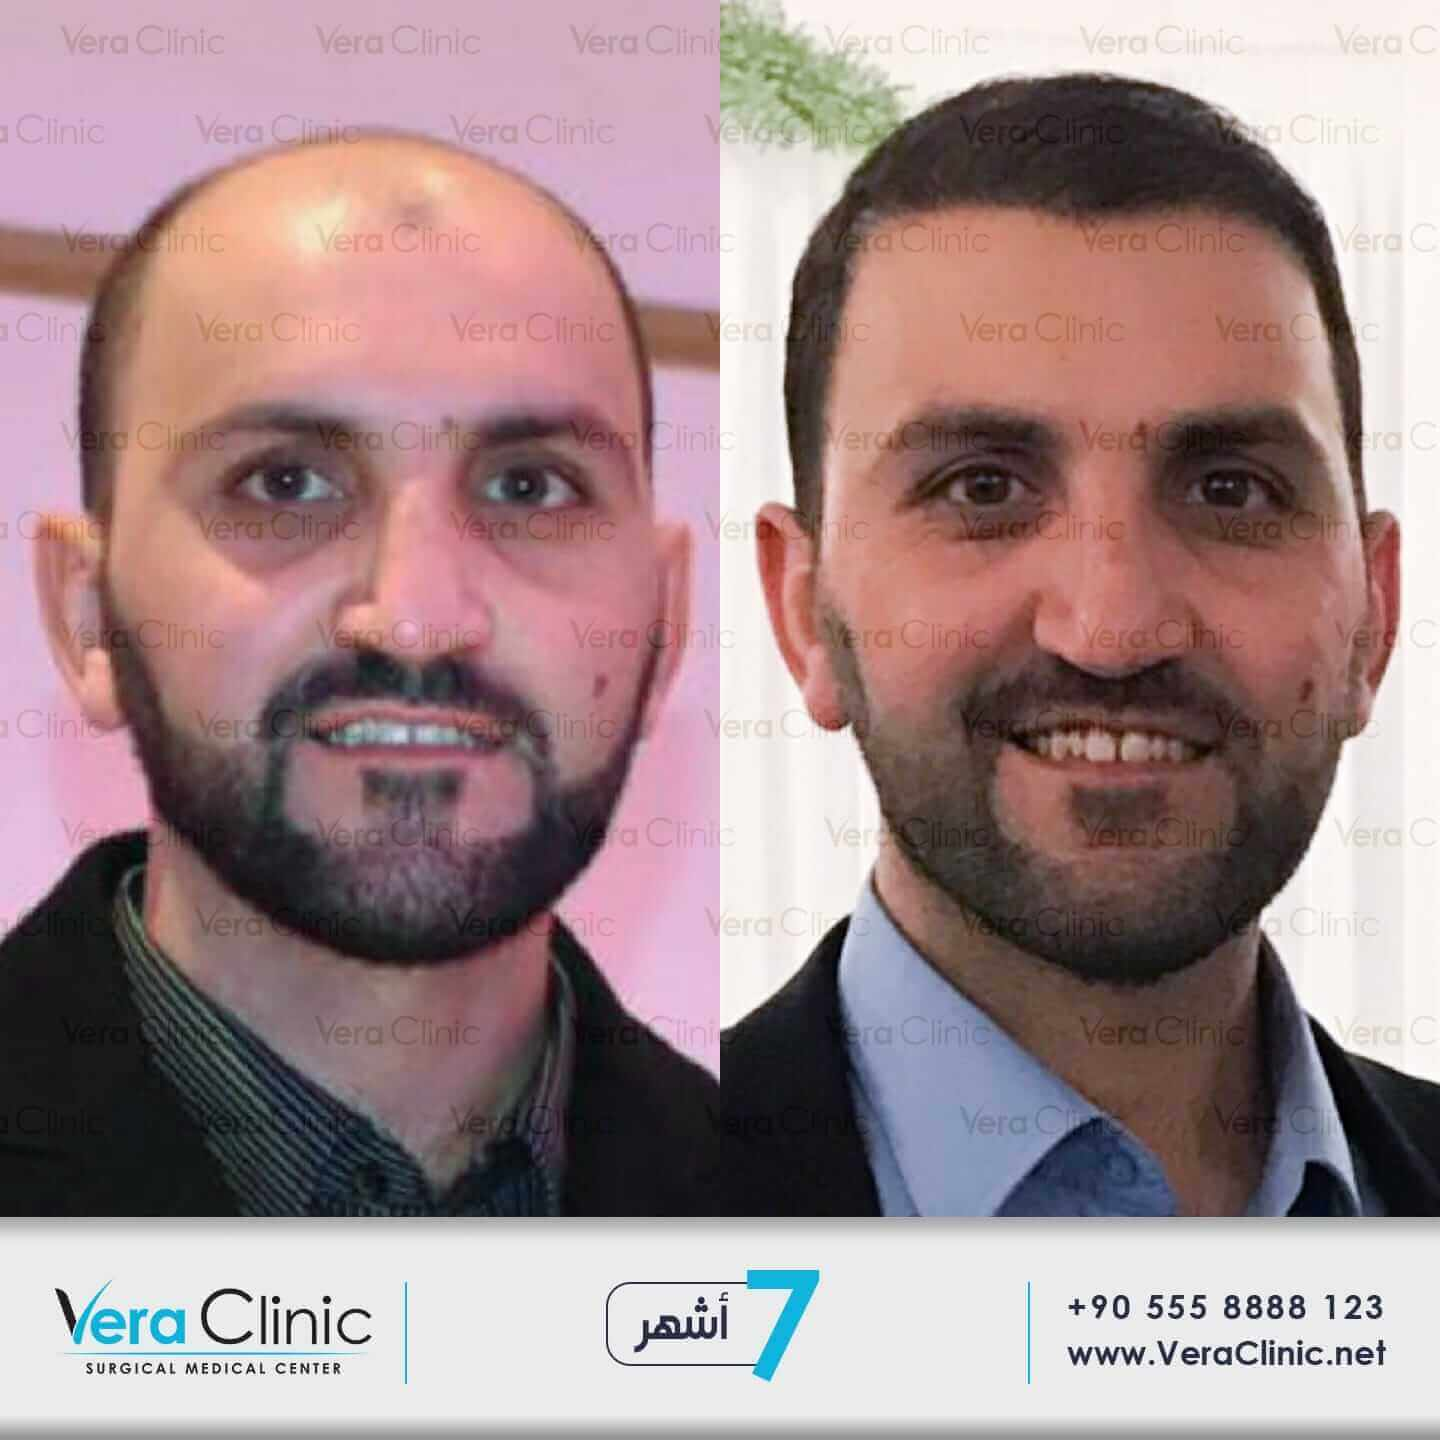 hair transplant before and after 7